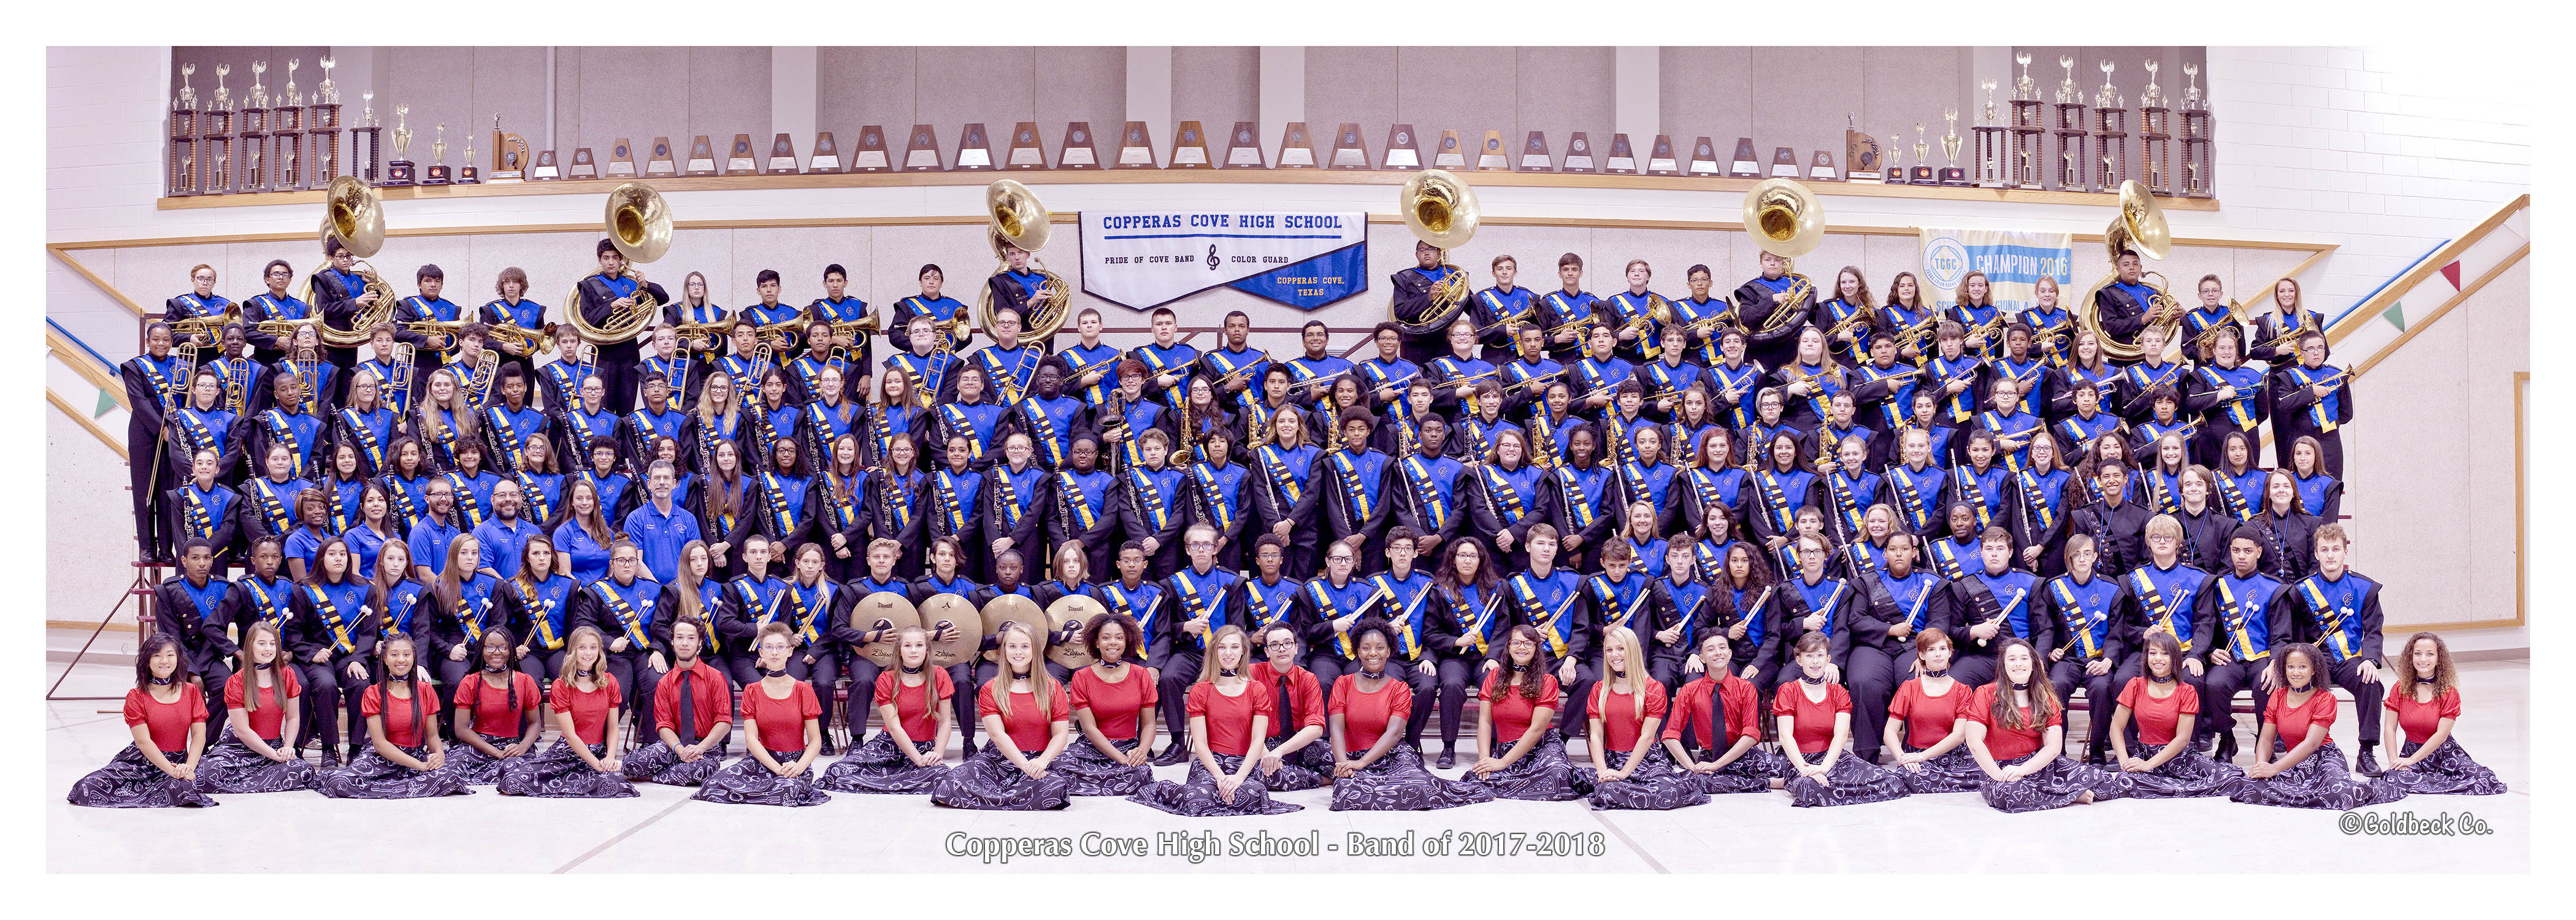 Coppers Cove High School Pride of Cove Band - 2017-2018